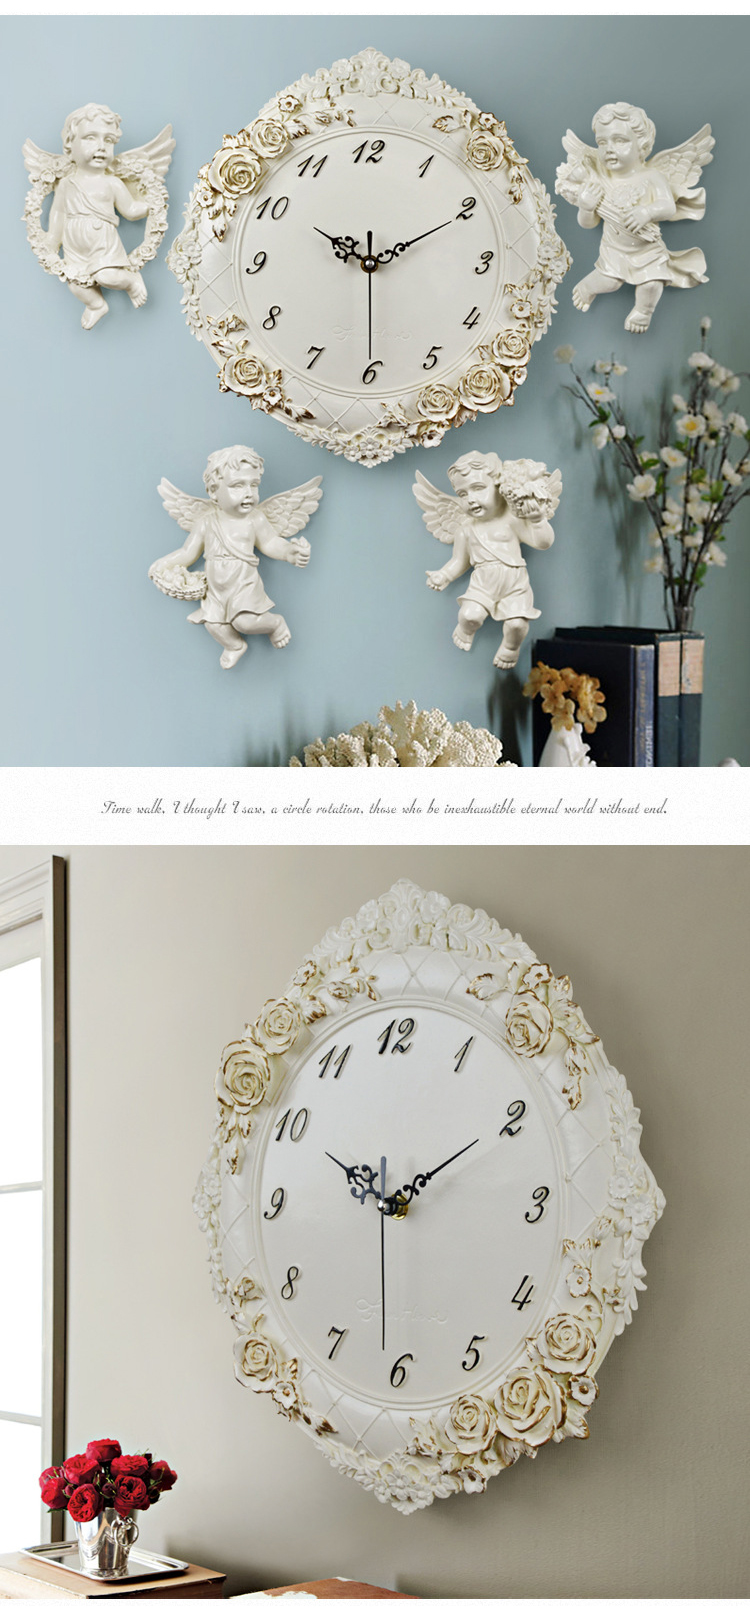 wall-clock-large-wall-clock-watch-vintage-wall-clock-home-decor-accessories-3d-statue-digital-clock-house-room-wedding-party-decoration (7)